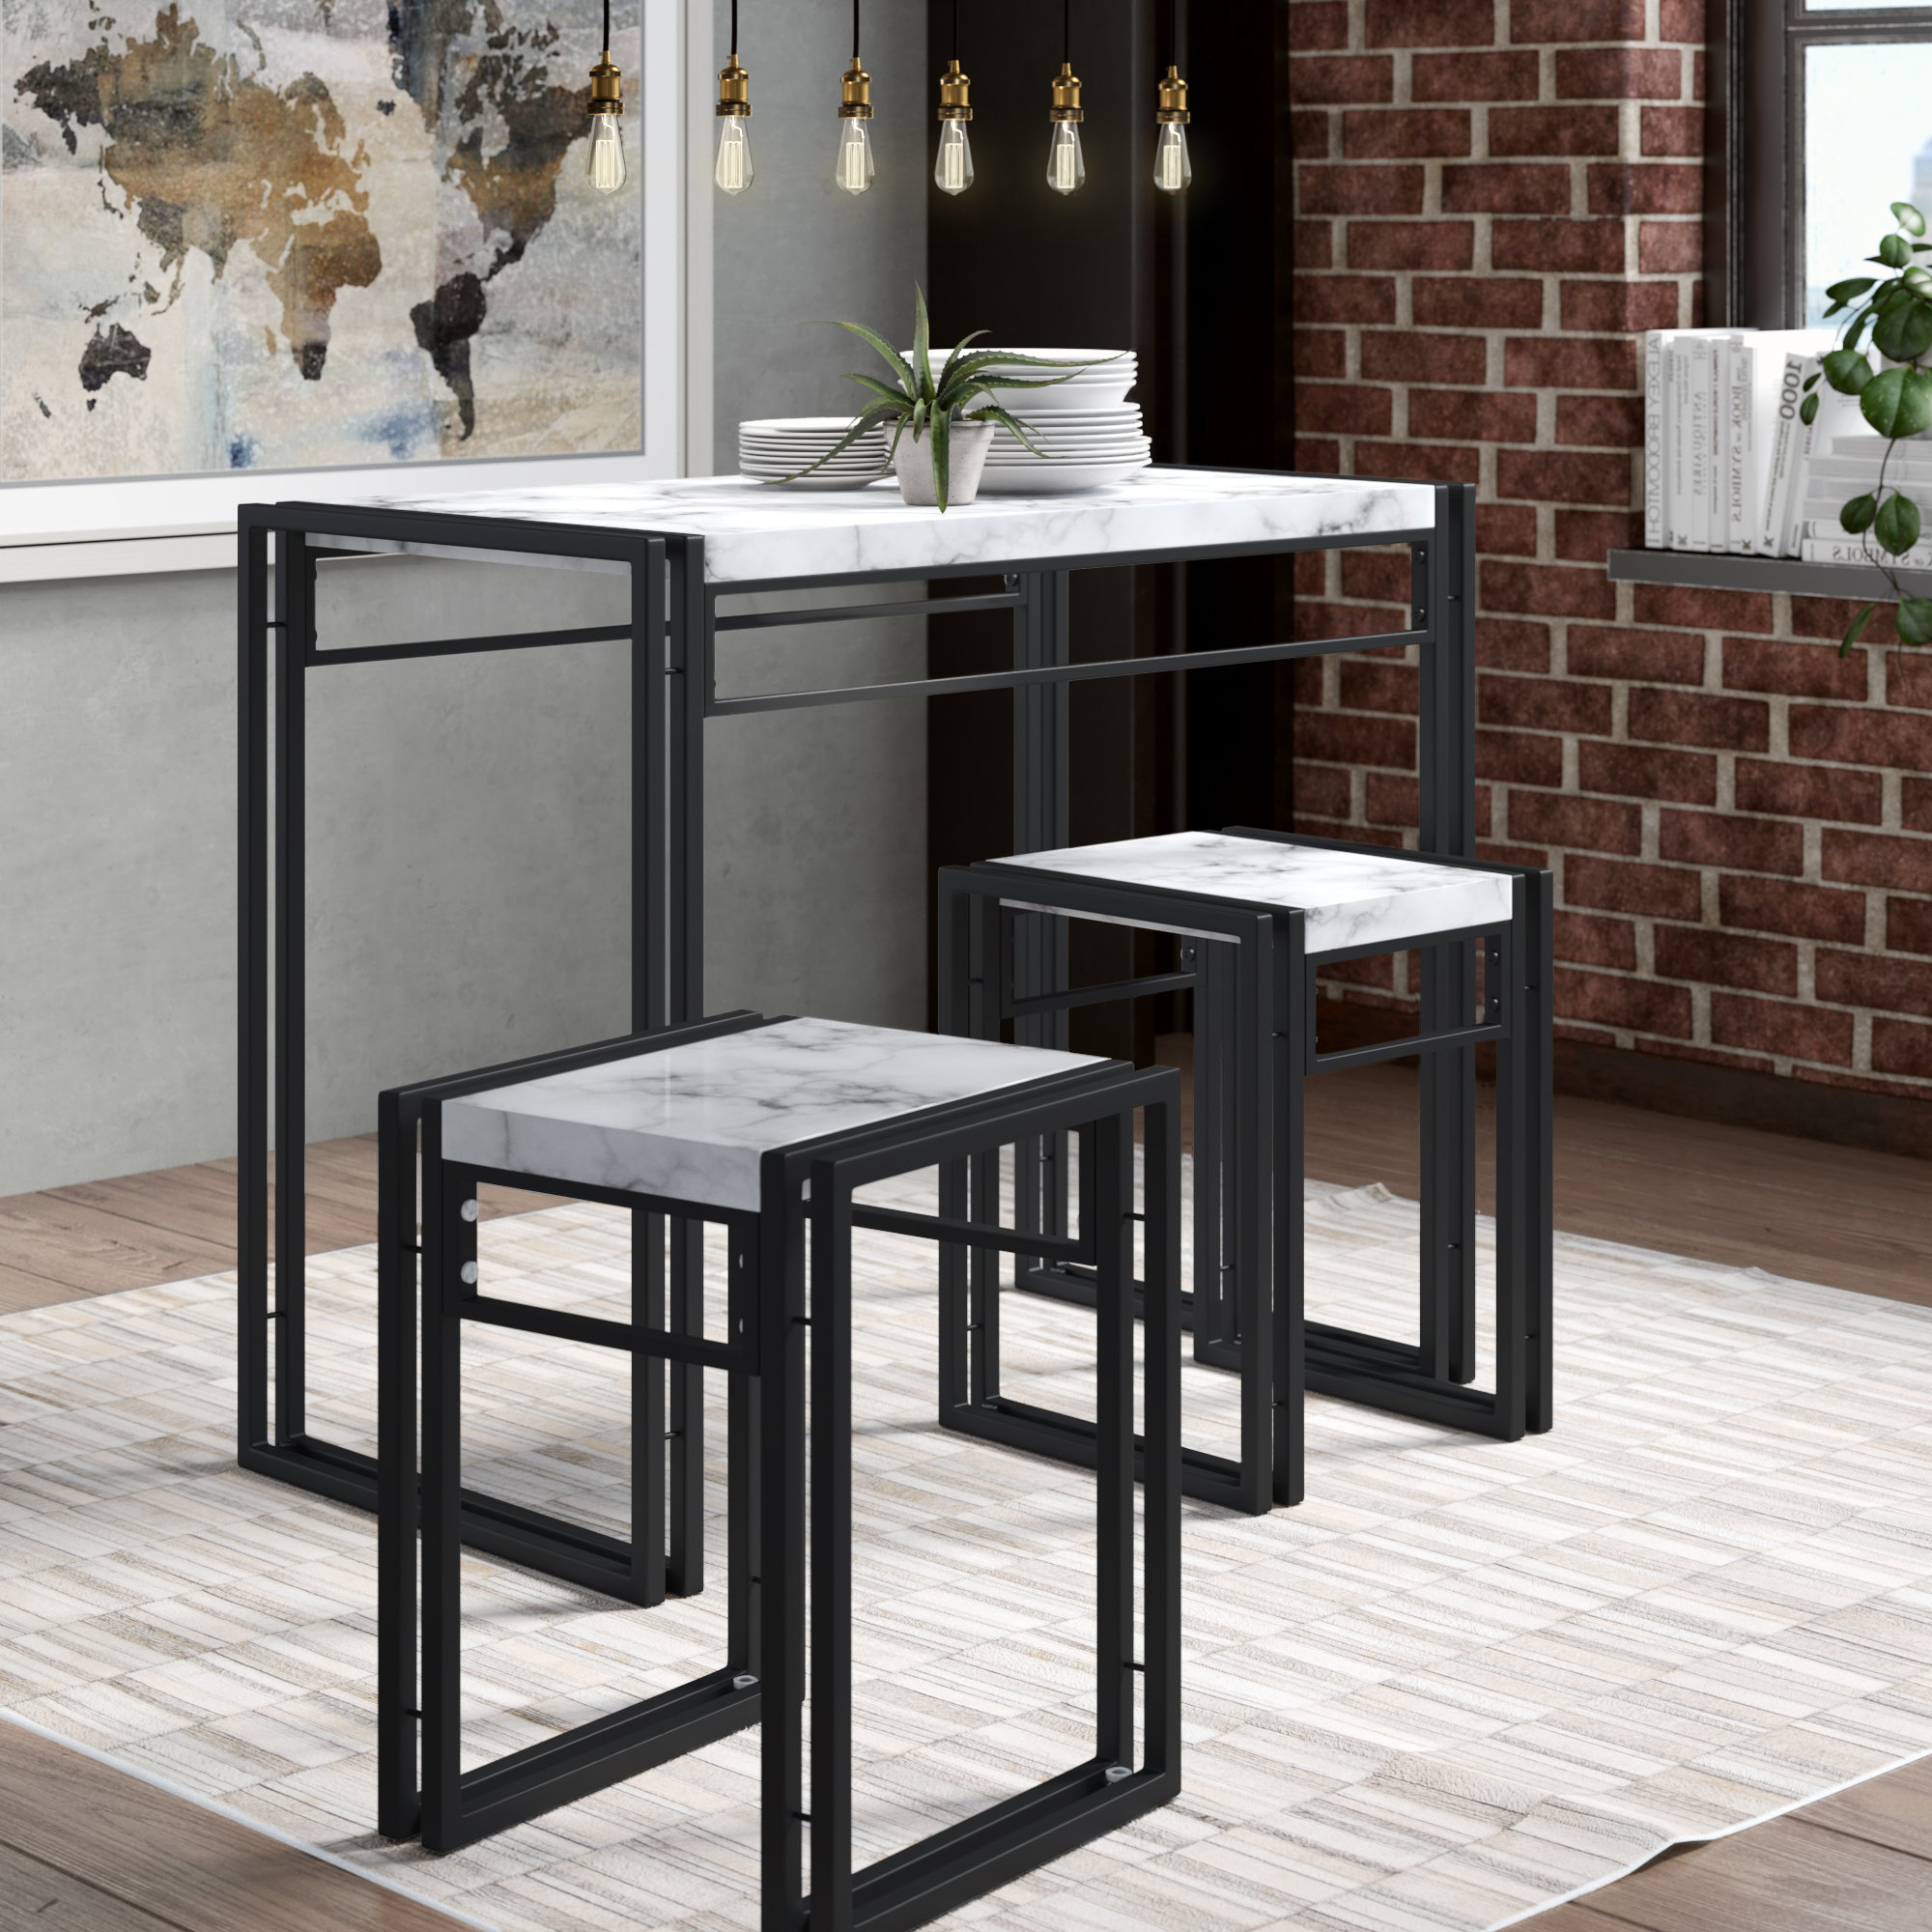 Nutter 3 Piece Dining Sets Pertaining To Widely Used Williston Forge Debby Small Space 3 Piece Dining Set & Reviews (View 3 of 25)